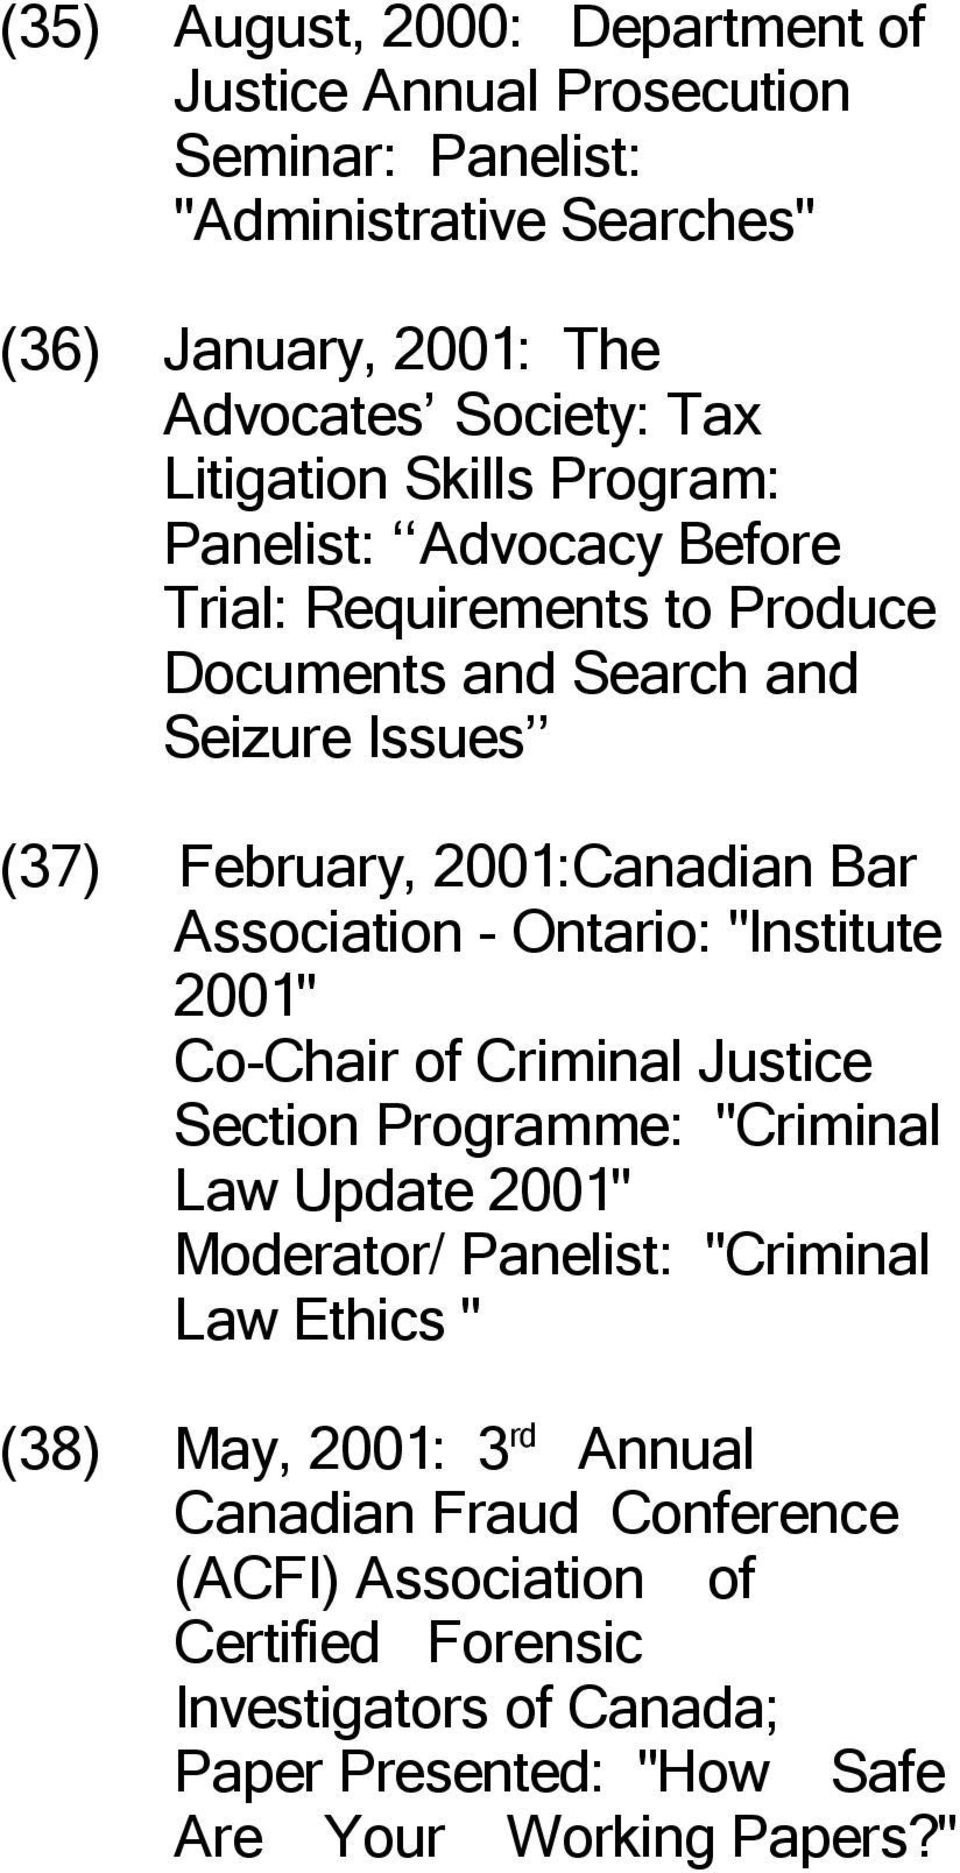 "Association - Ontario: ""Institute 2001"" Co-Chair of Criminal Justice Section Programme: ""Criminal Law Update 2001"" Moderator/ Panelist: ""Criminal Law Ethics """